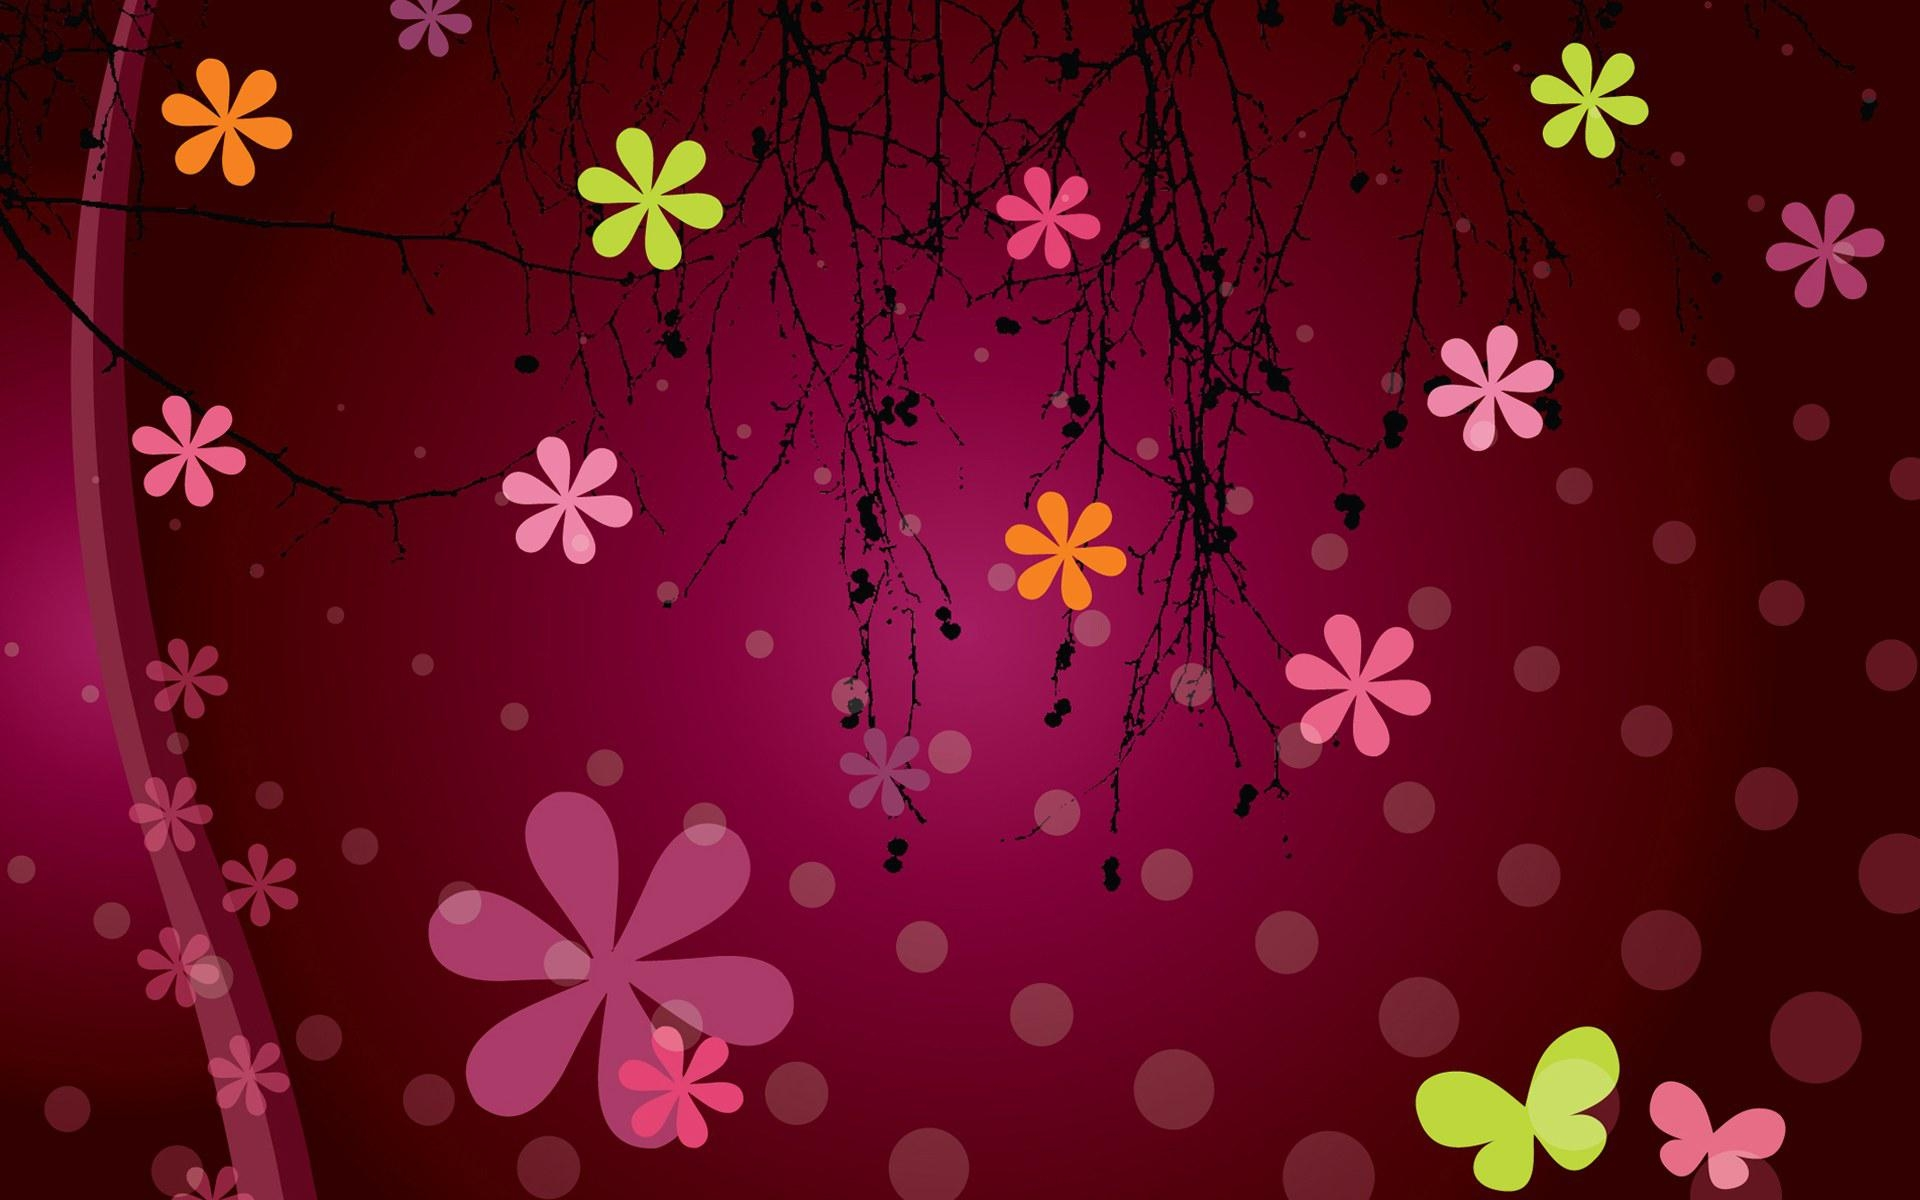 Girly Pink Desktop Wallpaper Quotes Cute Girly Wallpapers Girly